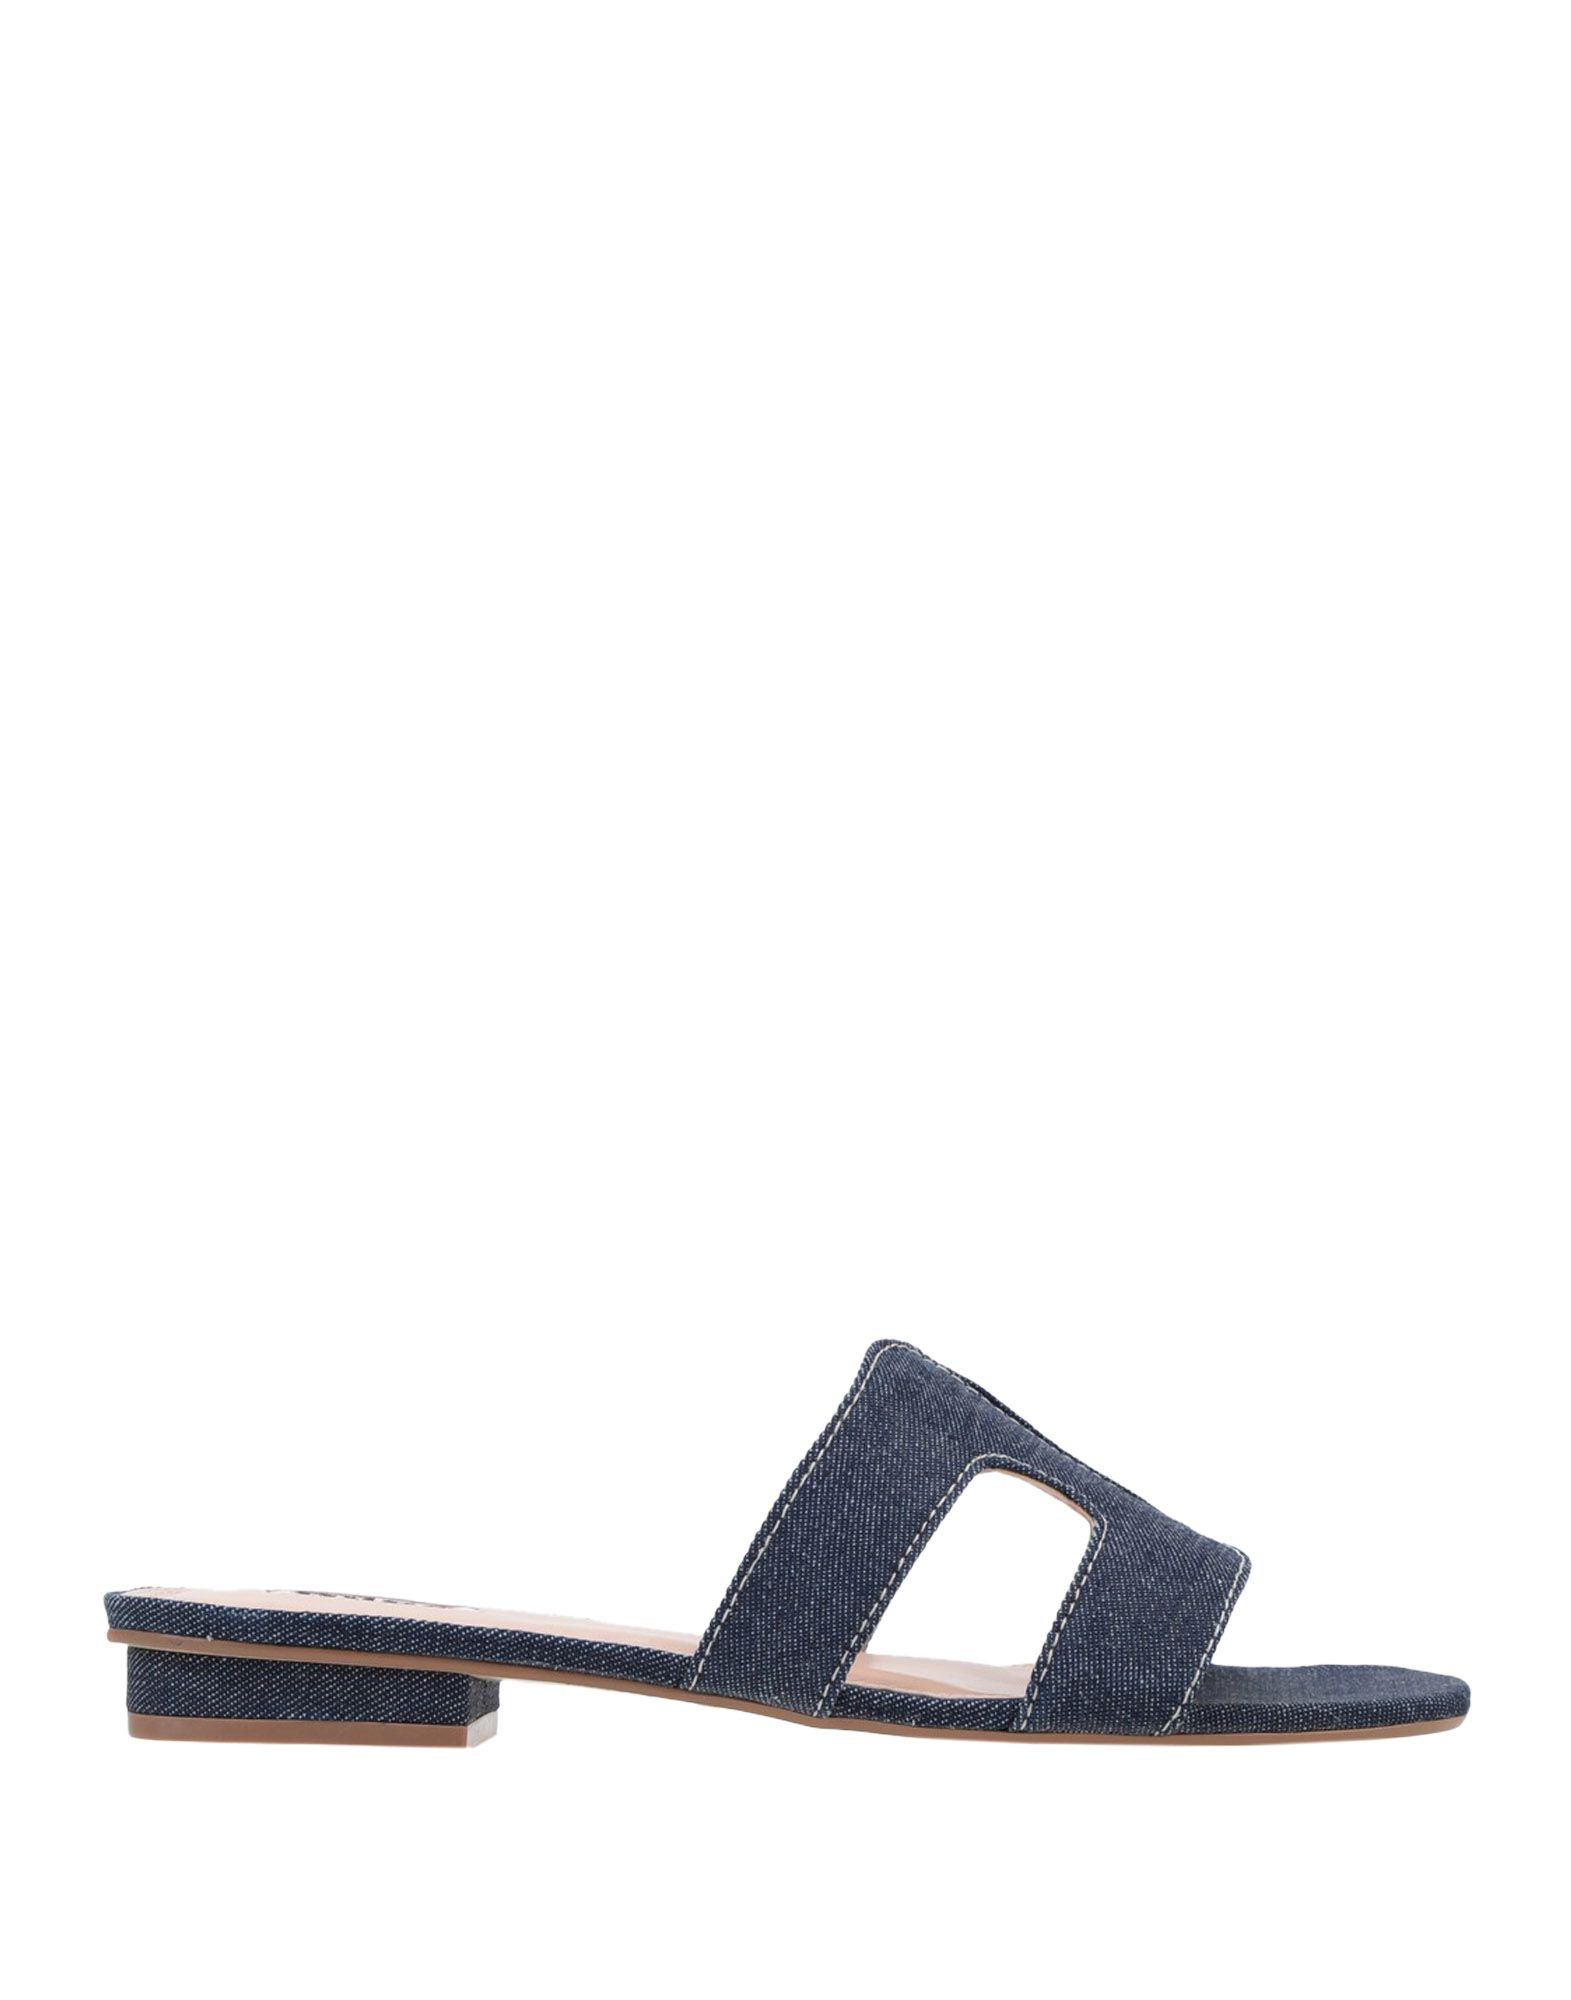 Sandali Dune London Denim - damen - 11704079NG